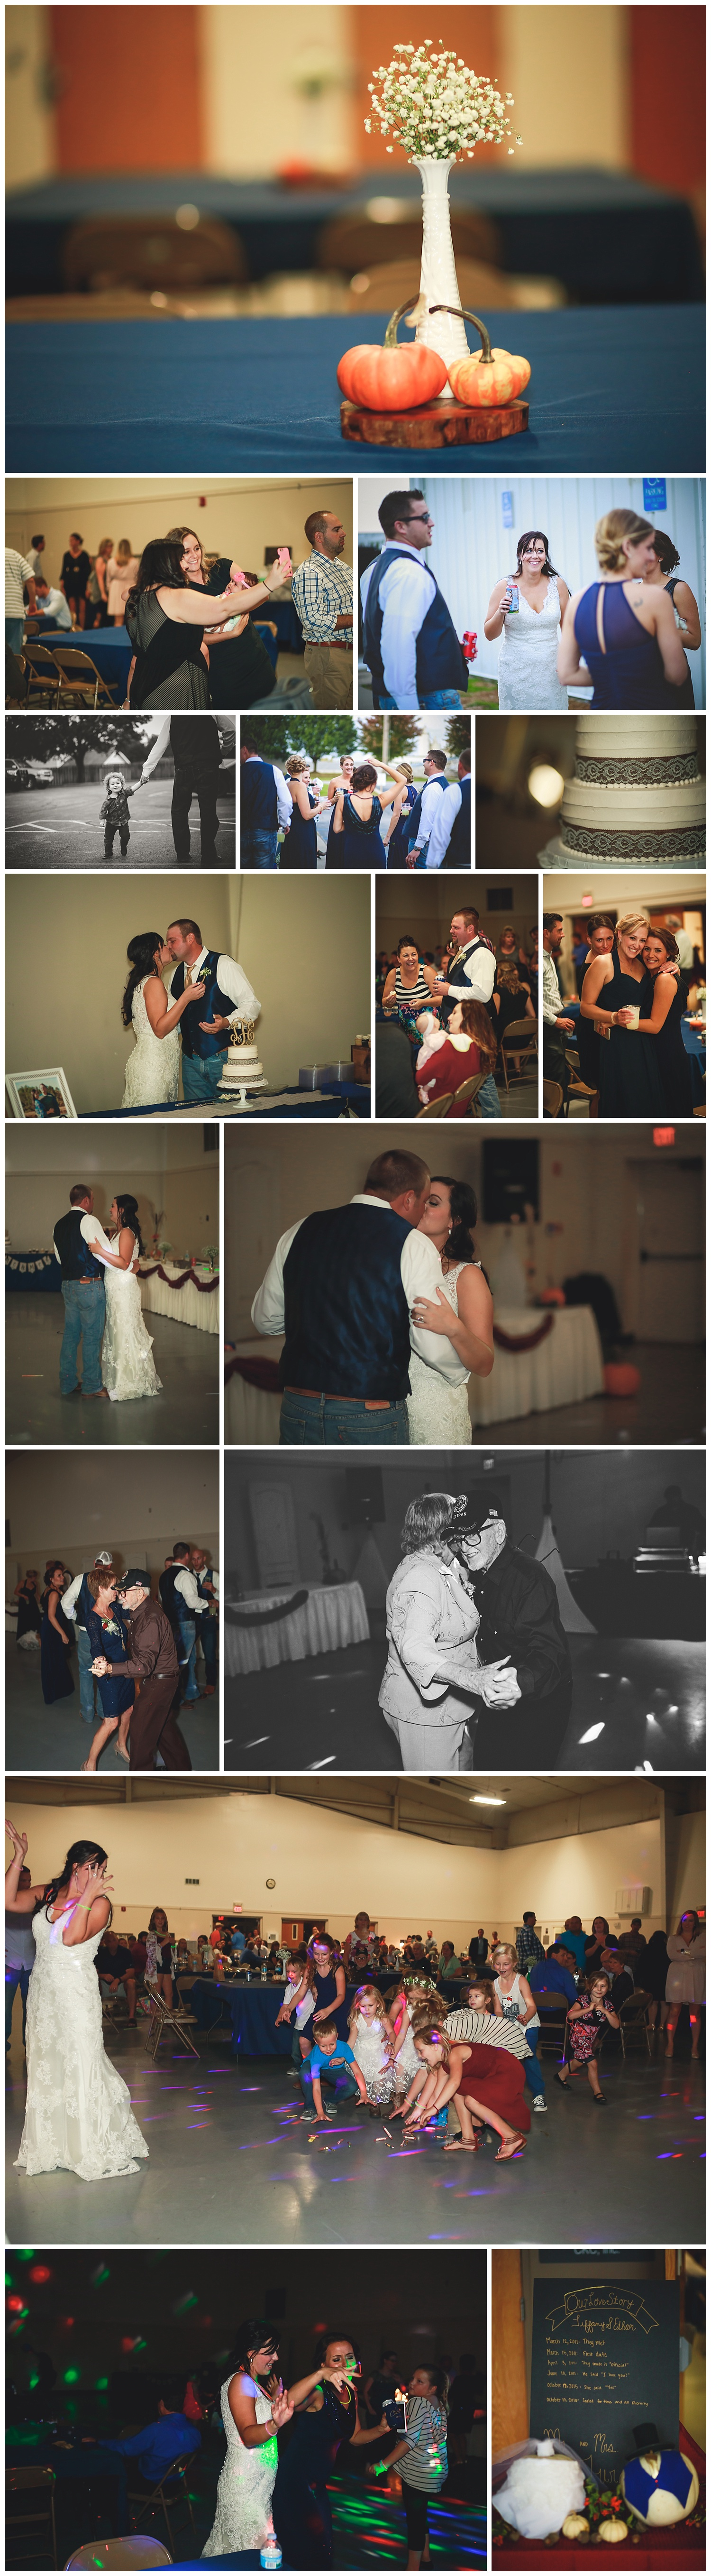 Wedding photographer columbia missouri